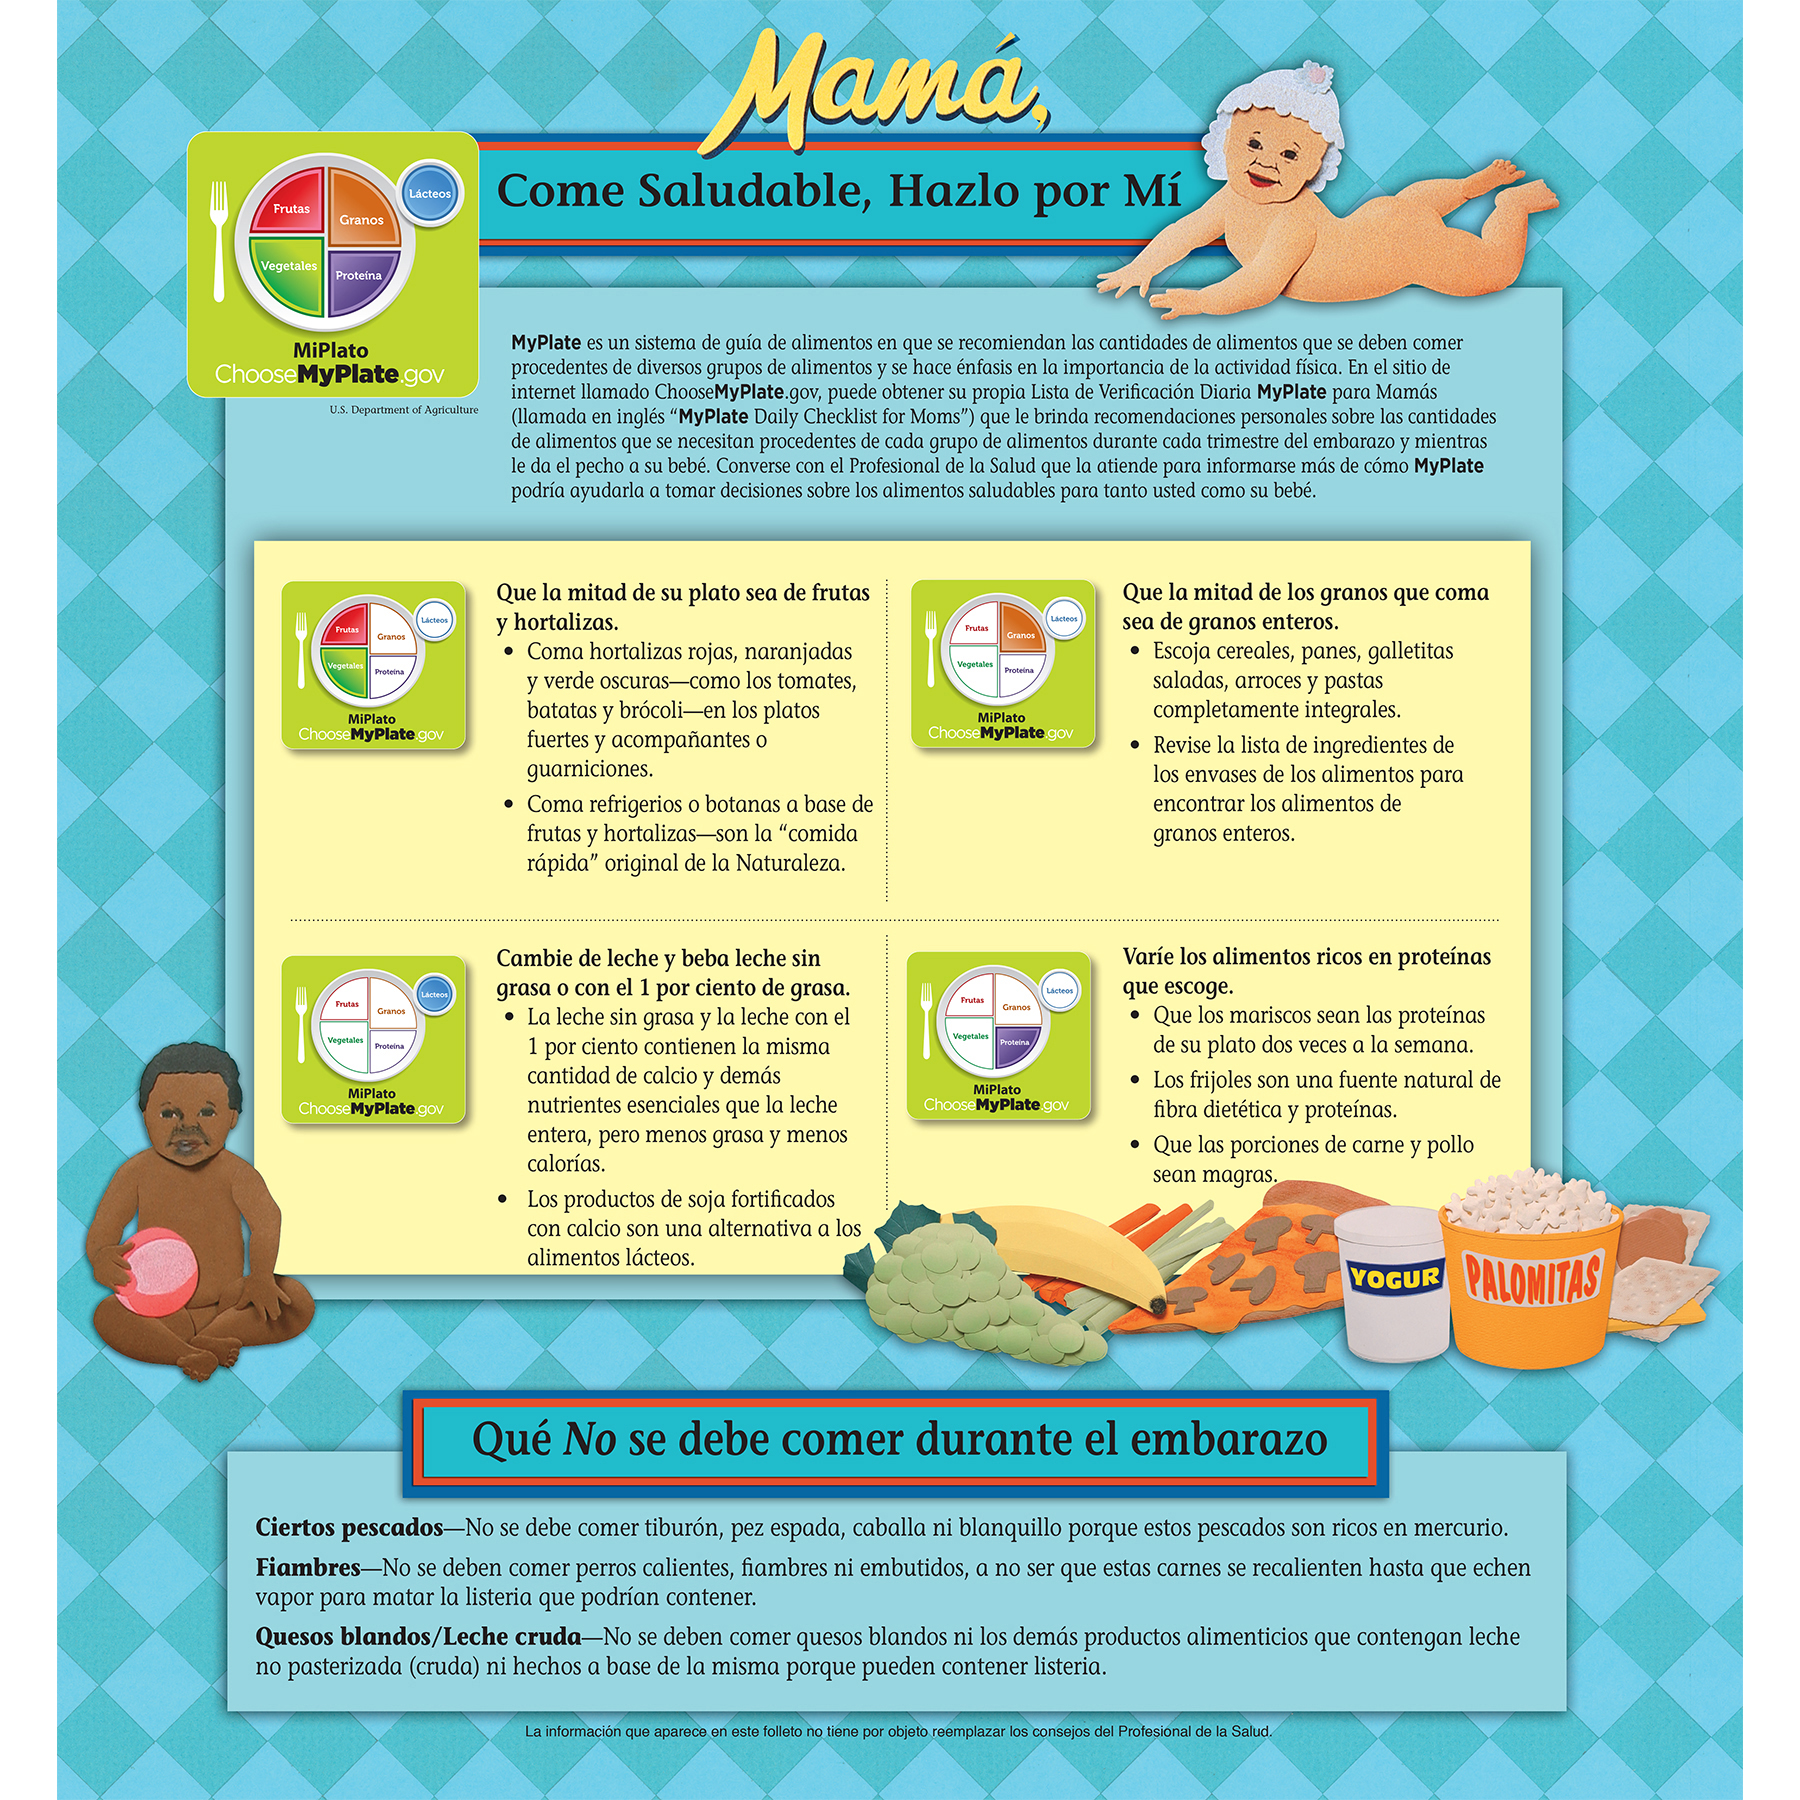 pamphlet/poster emphasizing pregnant mothers observing MyPlate guidelines and avoiding bad behaviors Spanish version, fold-out poster image showing MyPlate guidelines, Childbirth Graphics, 38522